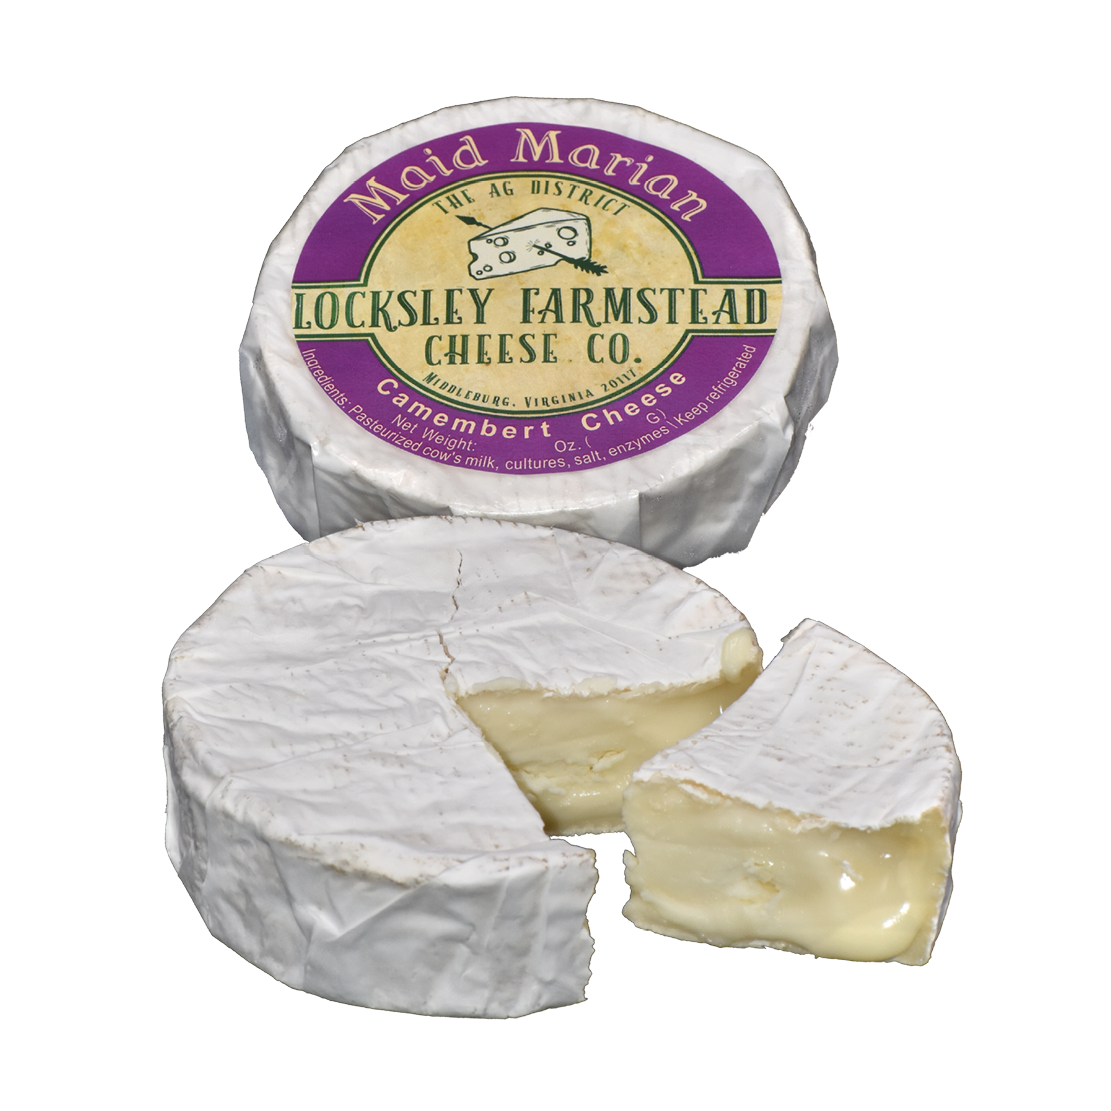 Cheese Product Images for Website4.png